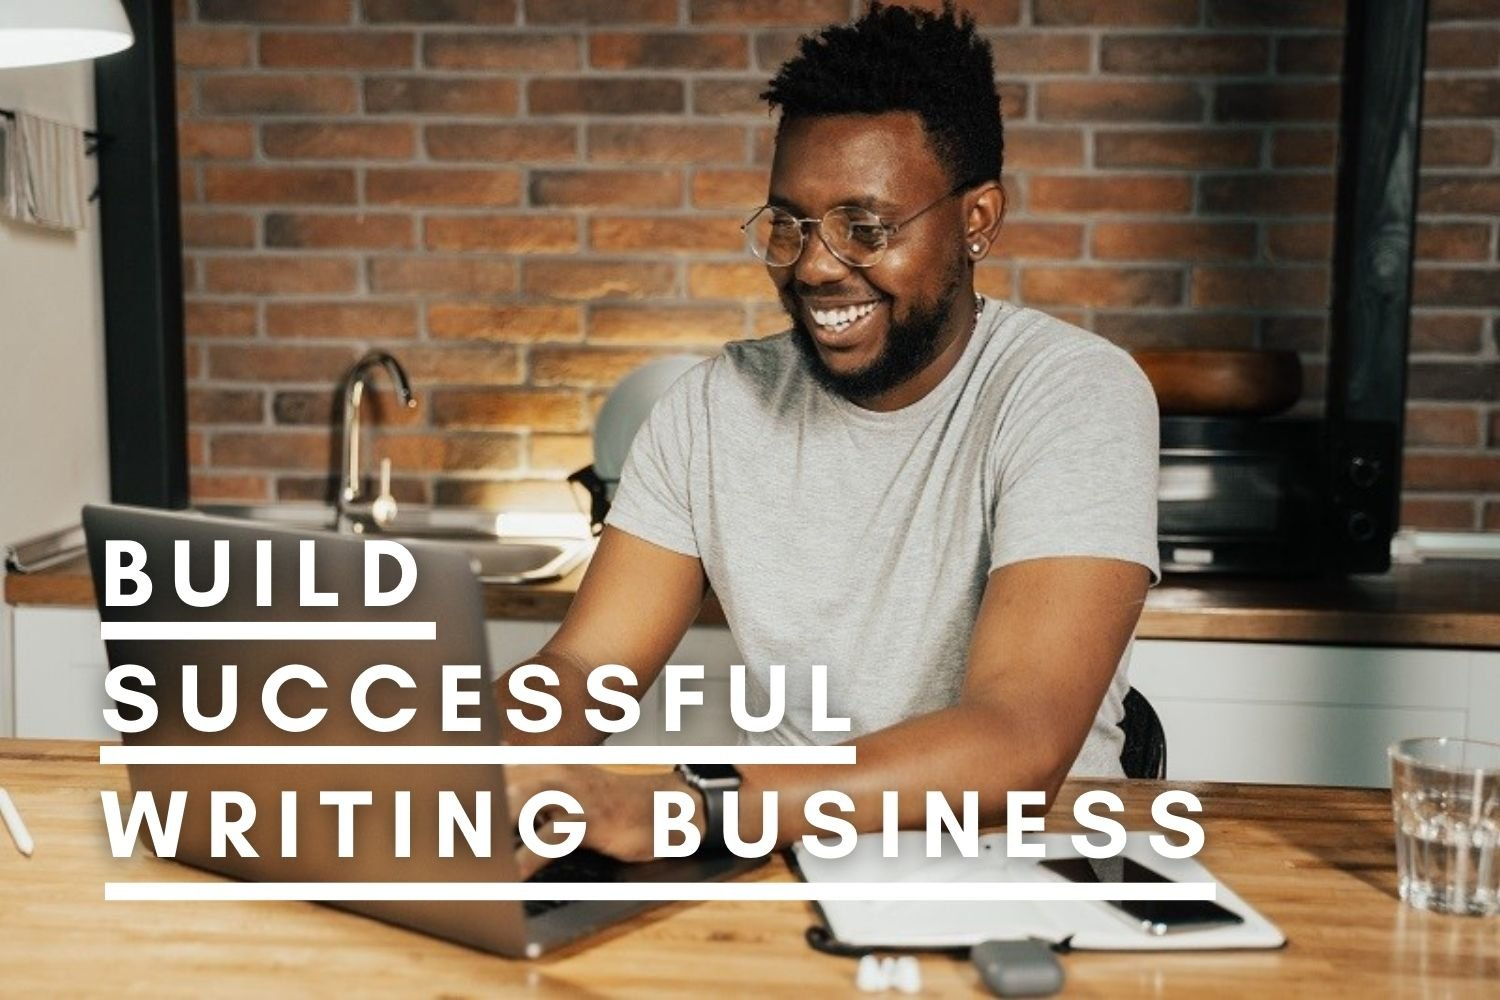 Build A Successful Writing Business